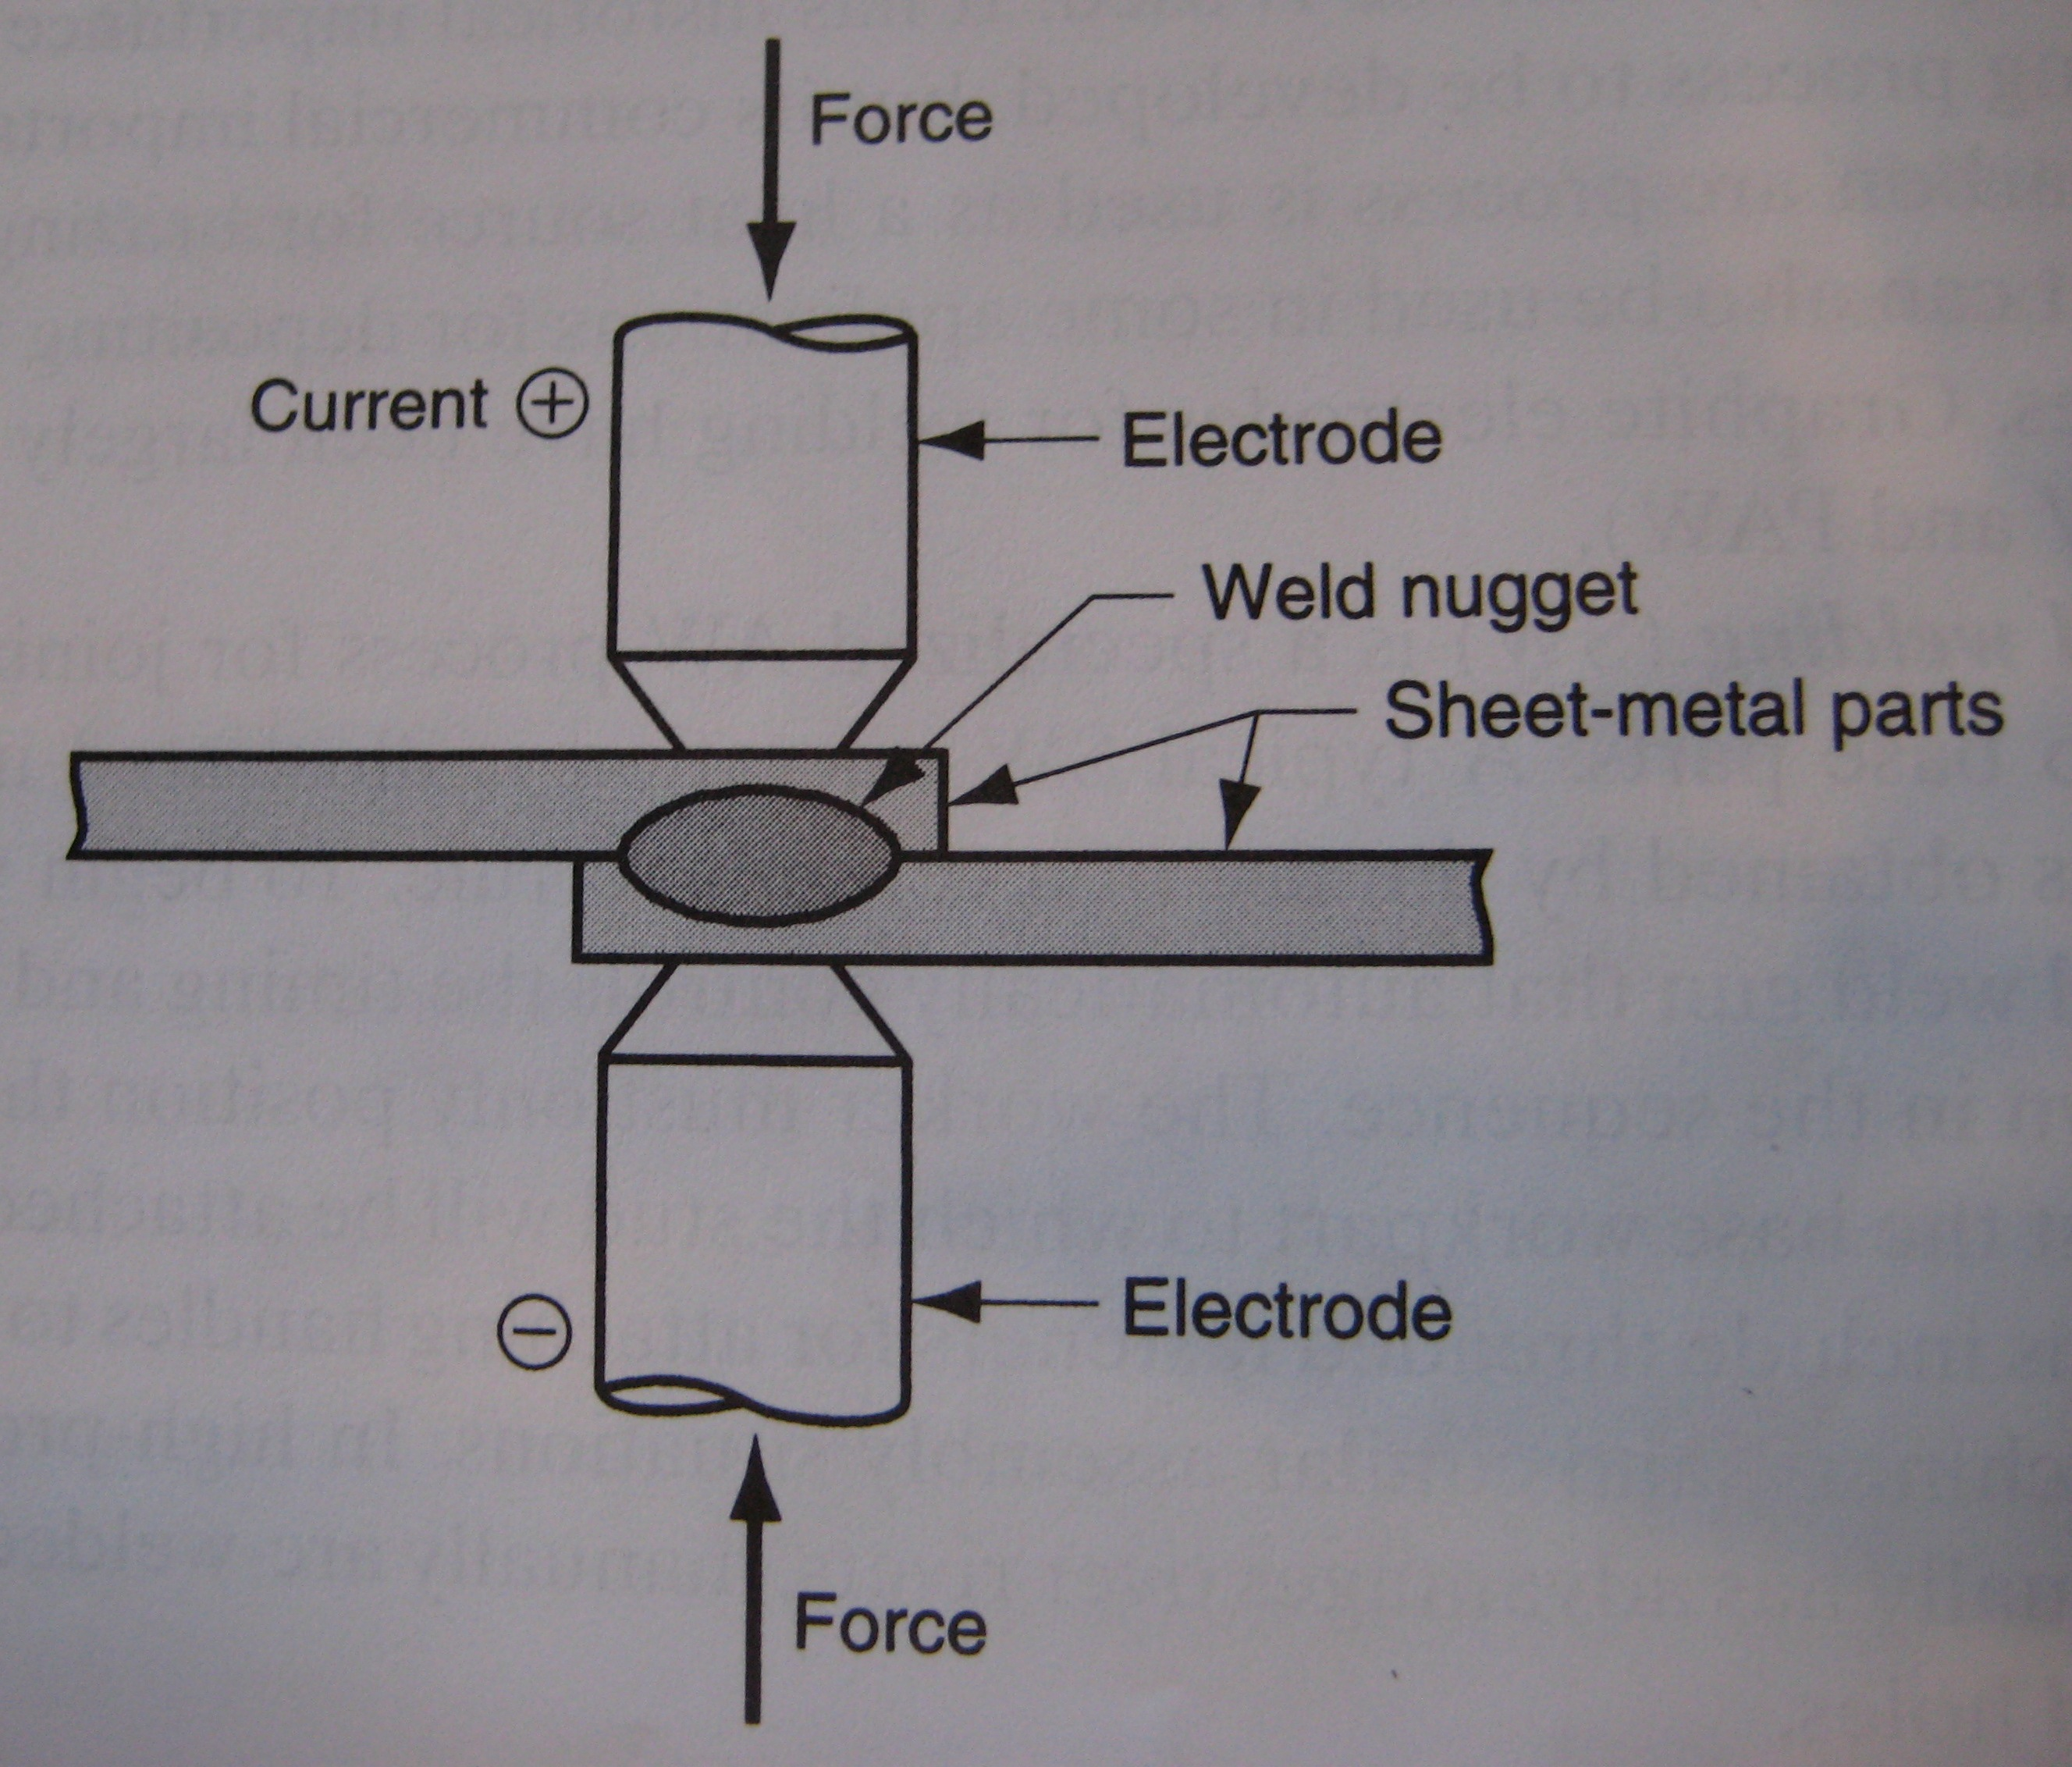 quality weld diagram 20 wiring diagram images wiring Weld Design Diagrams Parts of a Weld